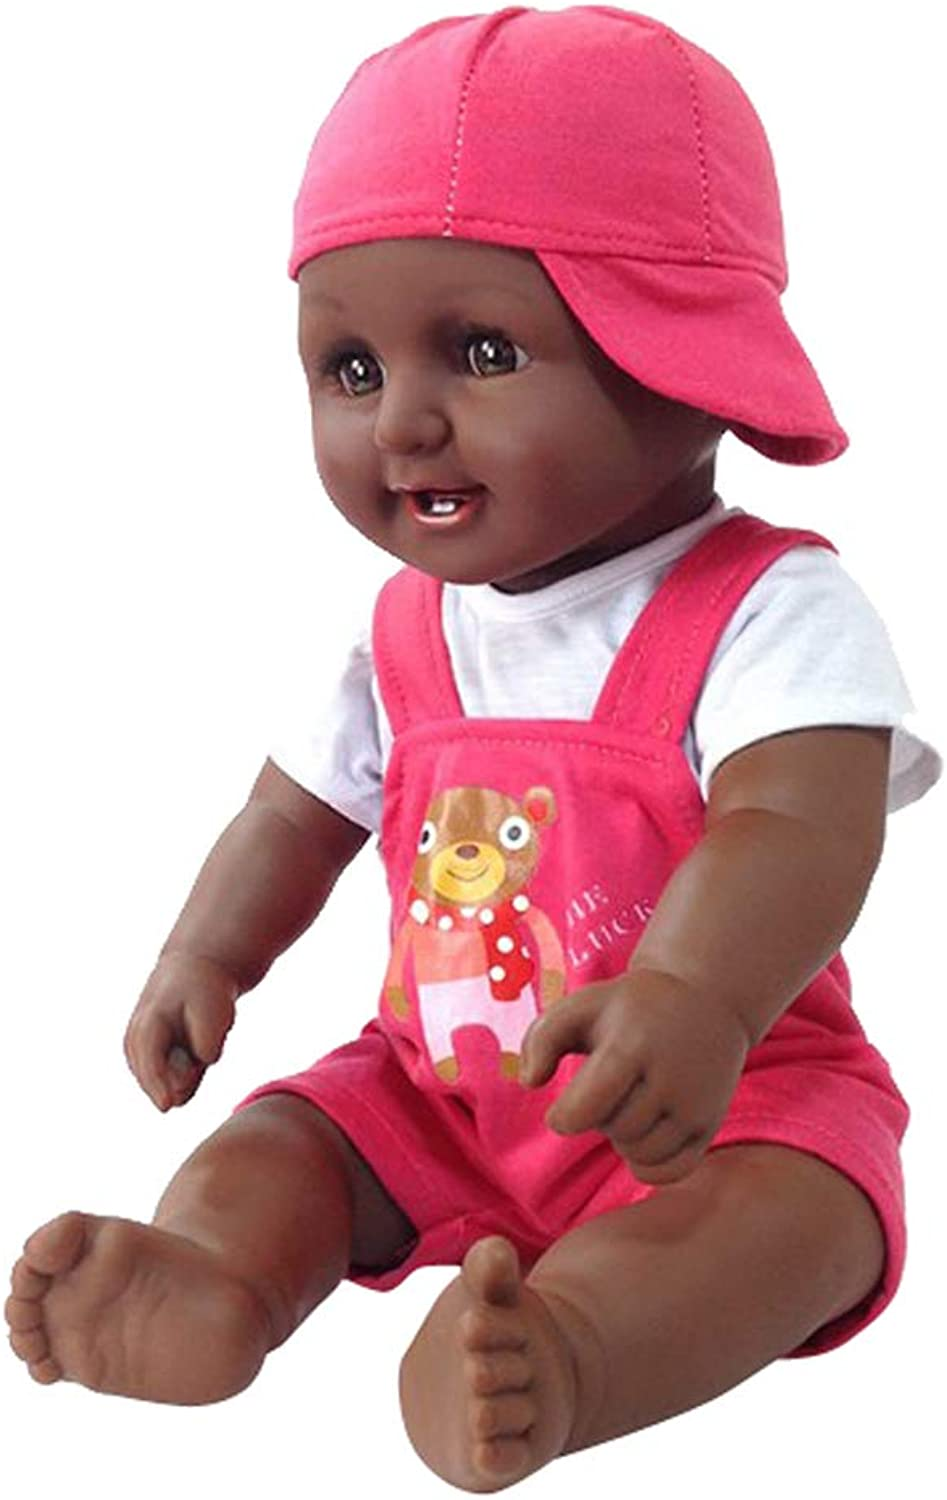 Kesoto 50cm Soft Vinyl Toy with Clothes Black Skin Doll in Pink Suspender Pants African Boy Dolls Baby Black Doll